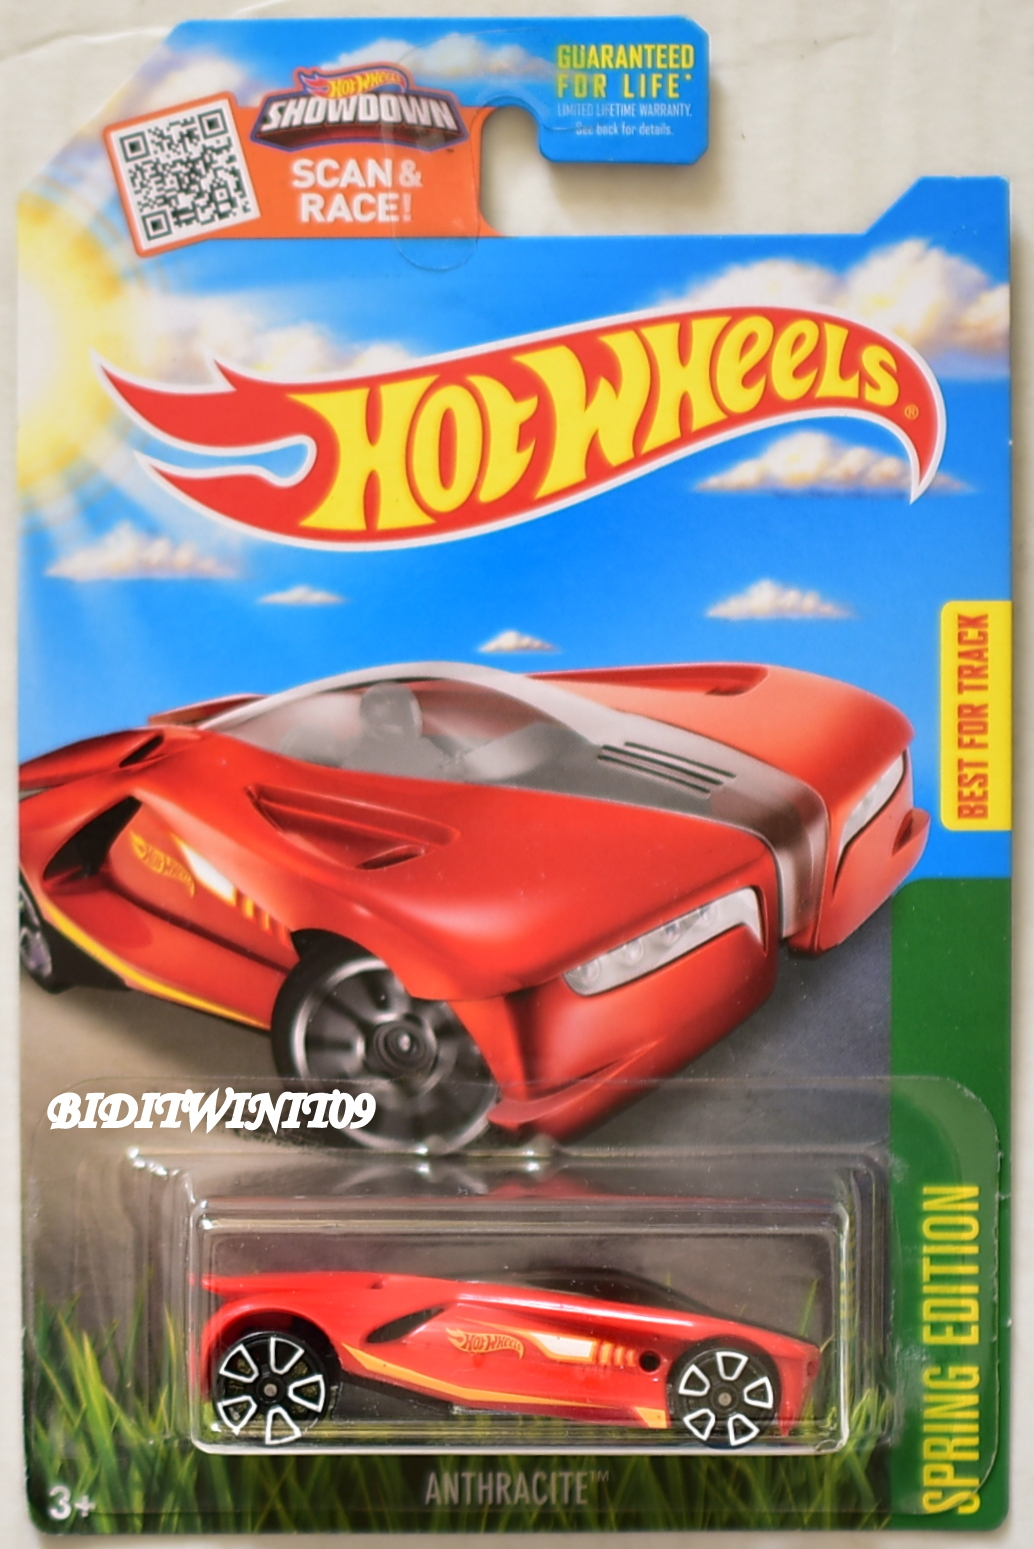 HOT WHEELS 2016 SPRING EDITION ANTHRACITE TARGET EXCLUSIVE